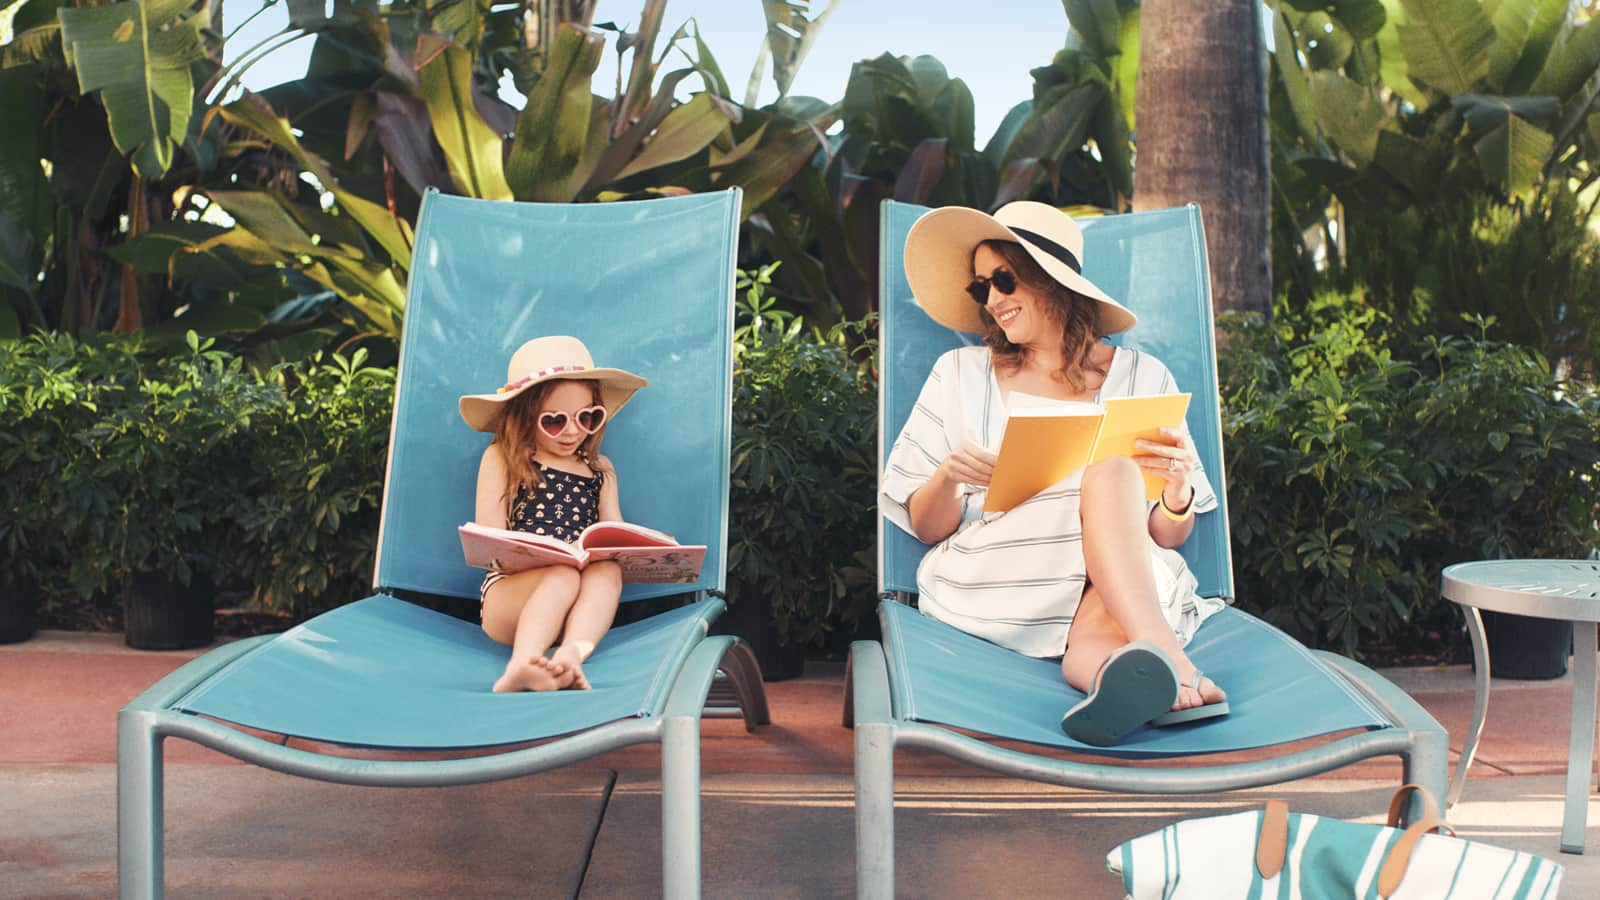 A mother and a daughter wearing pool attire read in lounge chairs in front of dense foliage